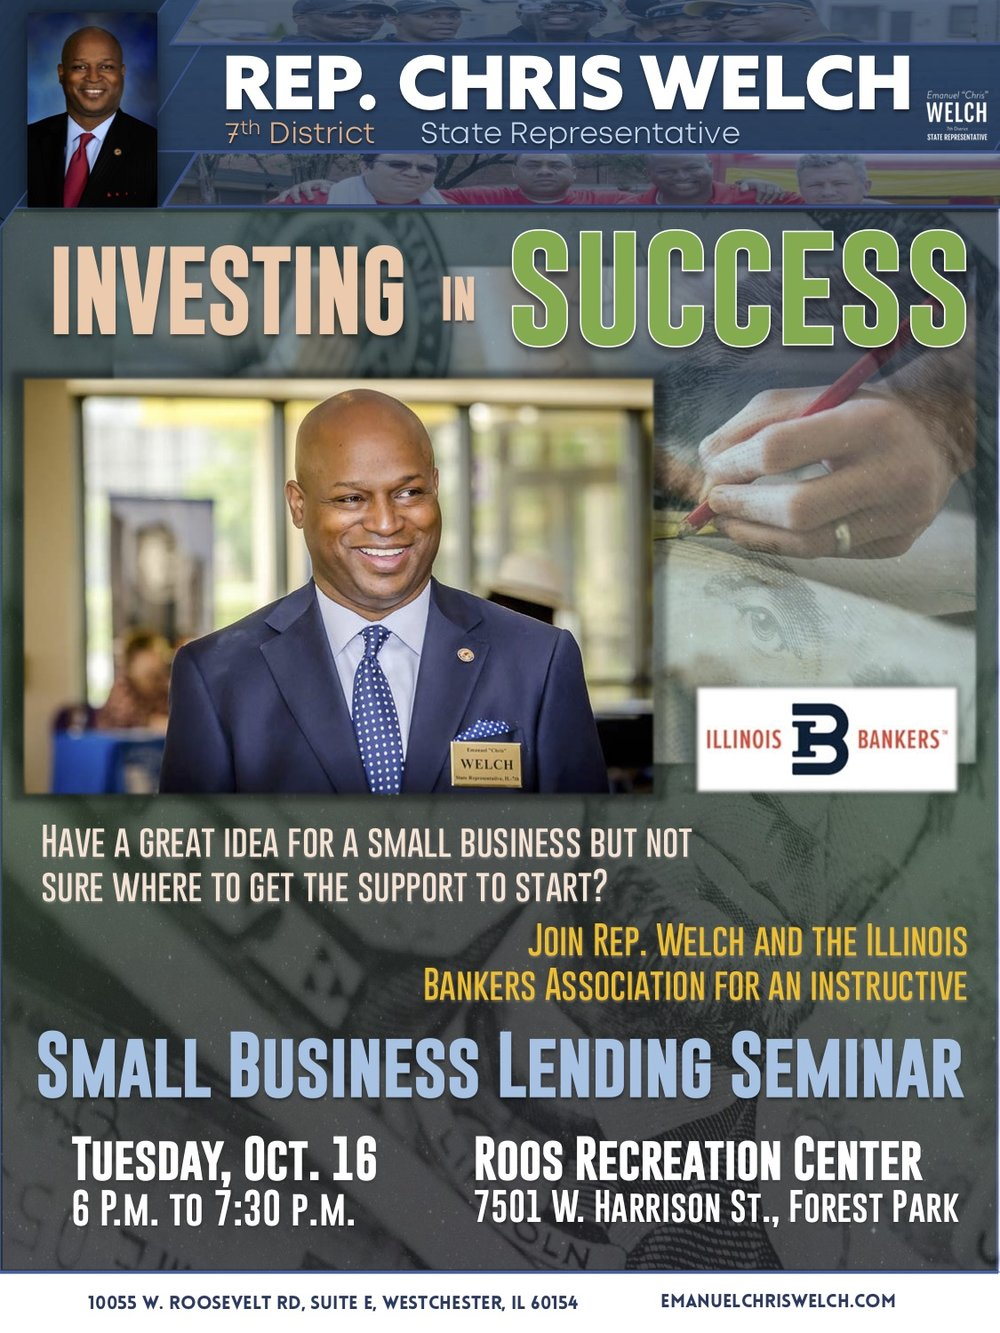 Rep. Welch small business seminar flyer Oct 2018.jpg